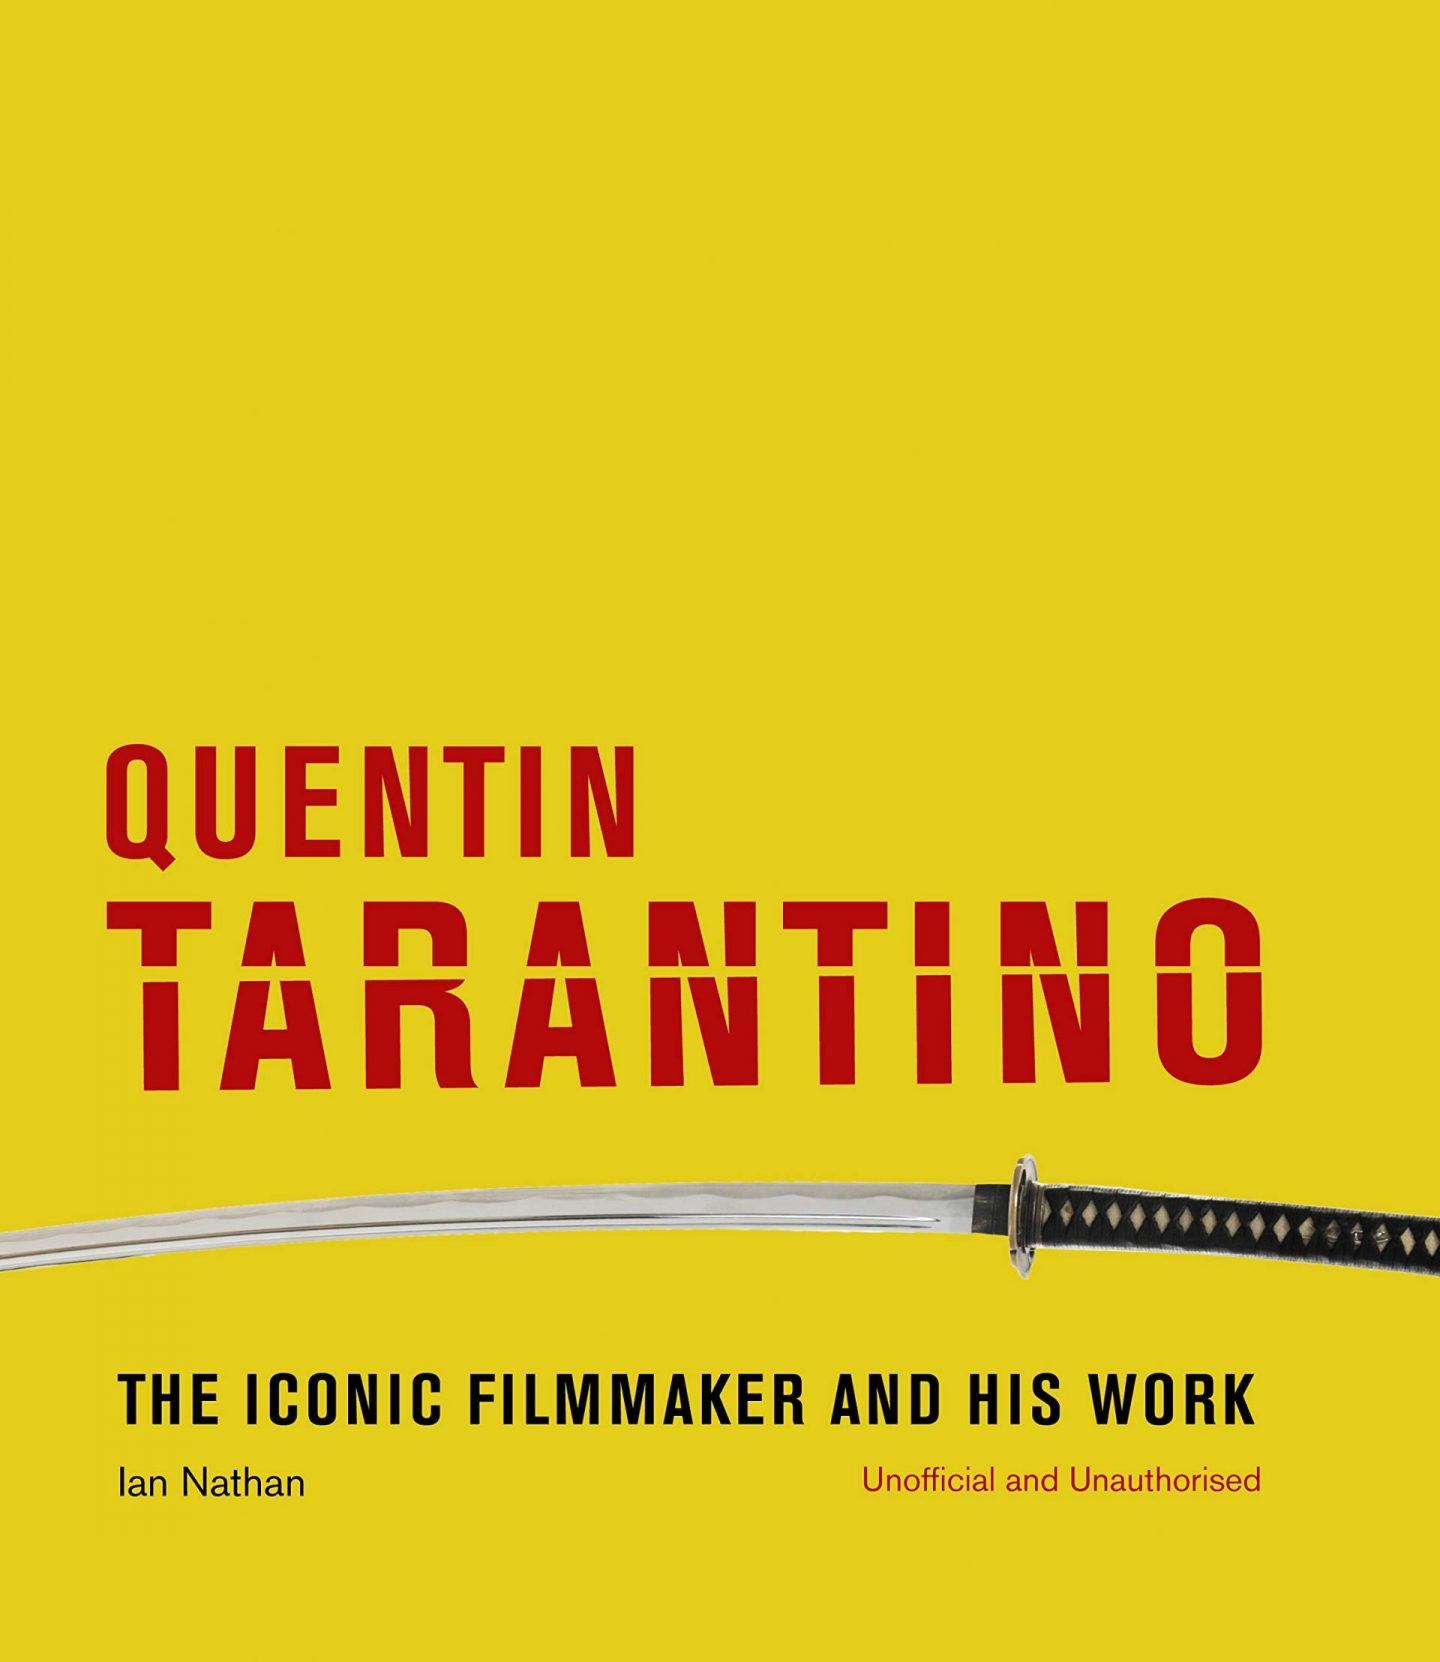 QUENTIN-TARANTINO-THE-ICONIC-FILMMAKER-AND-HIS-WORK-1440x1662